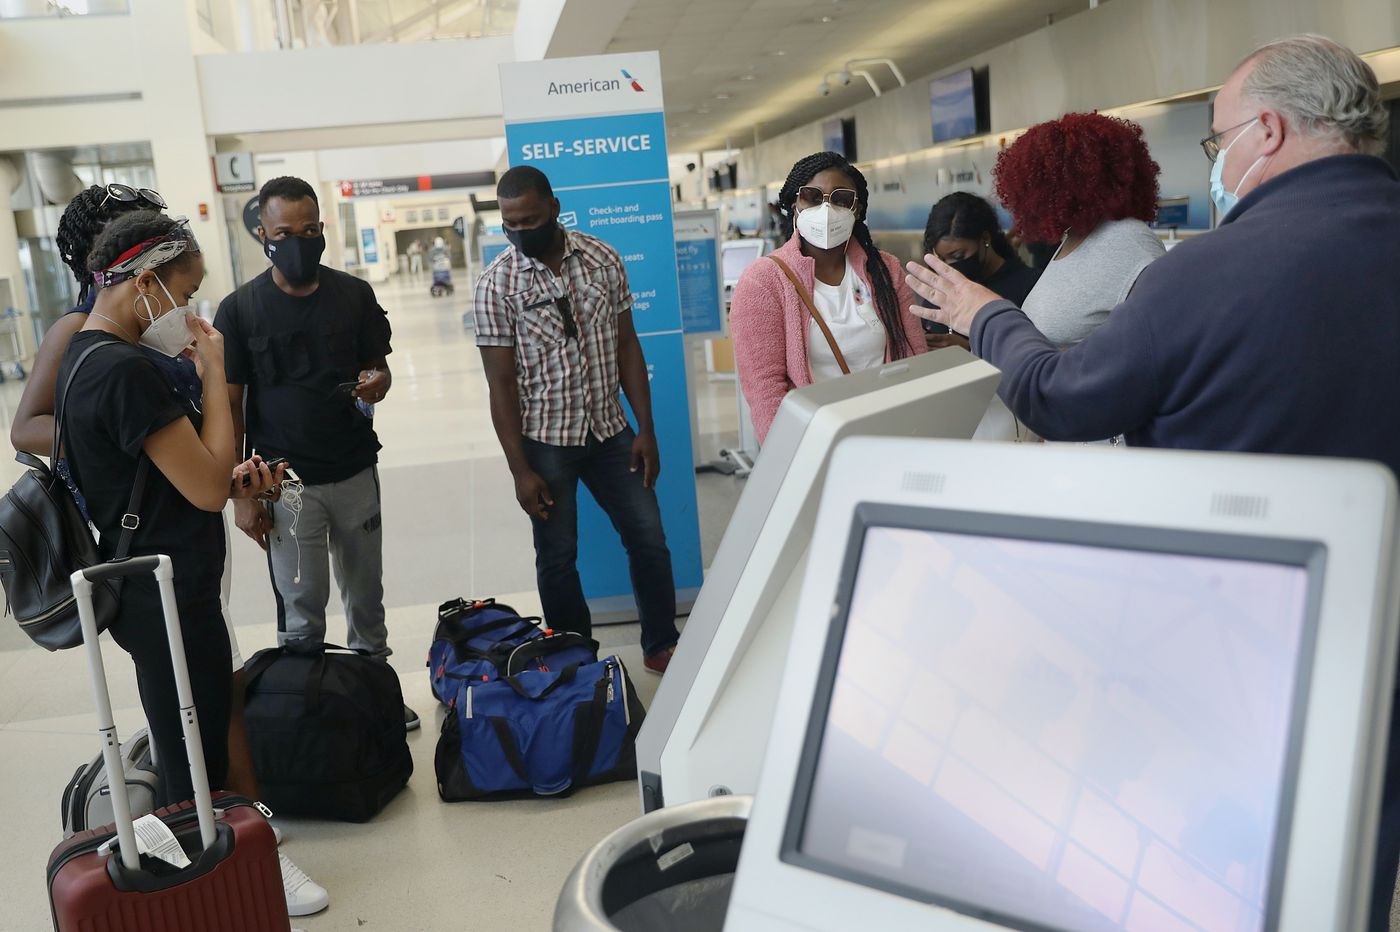 Can airlines make passengers wear masks?